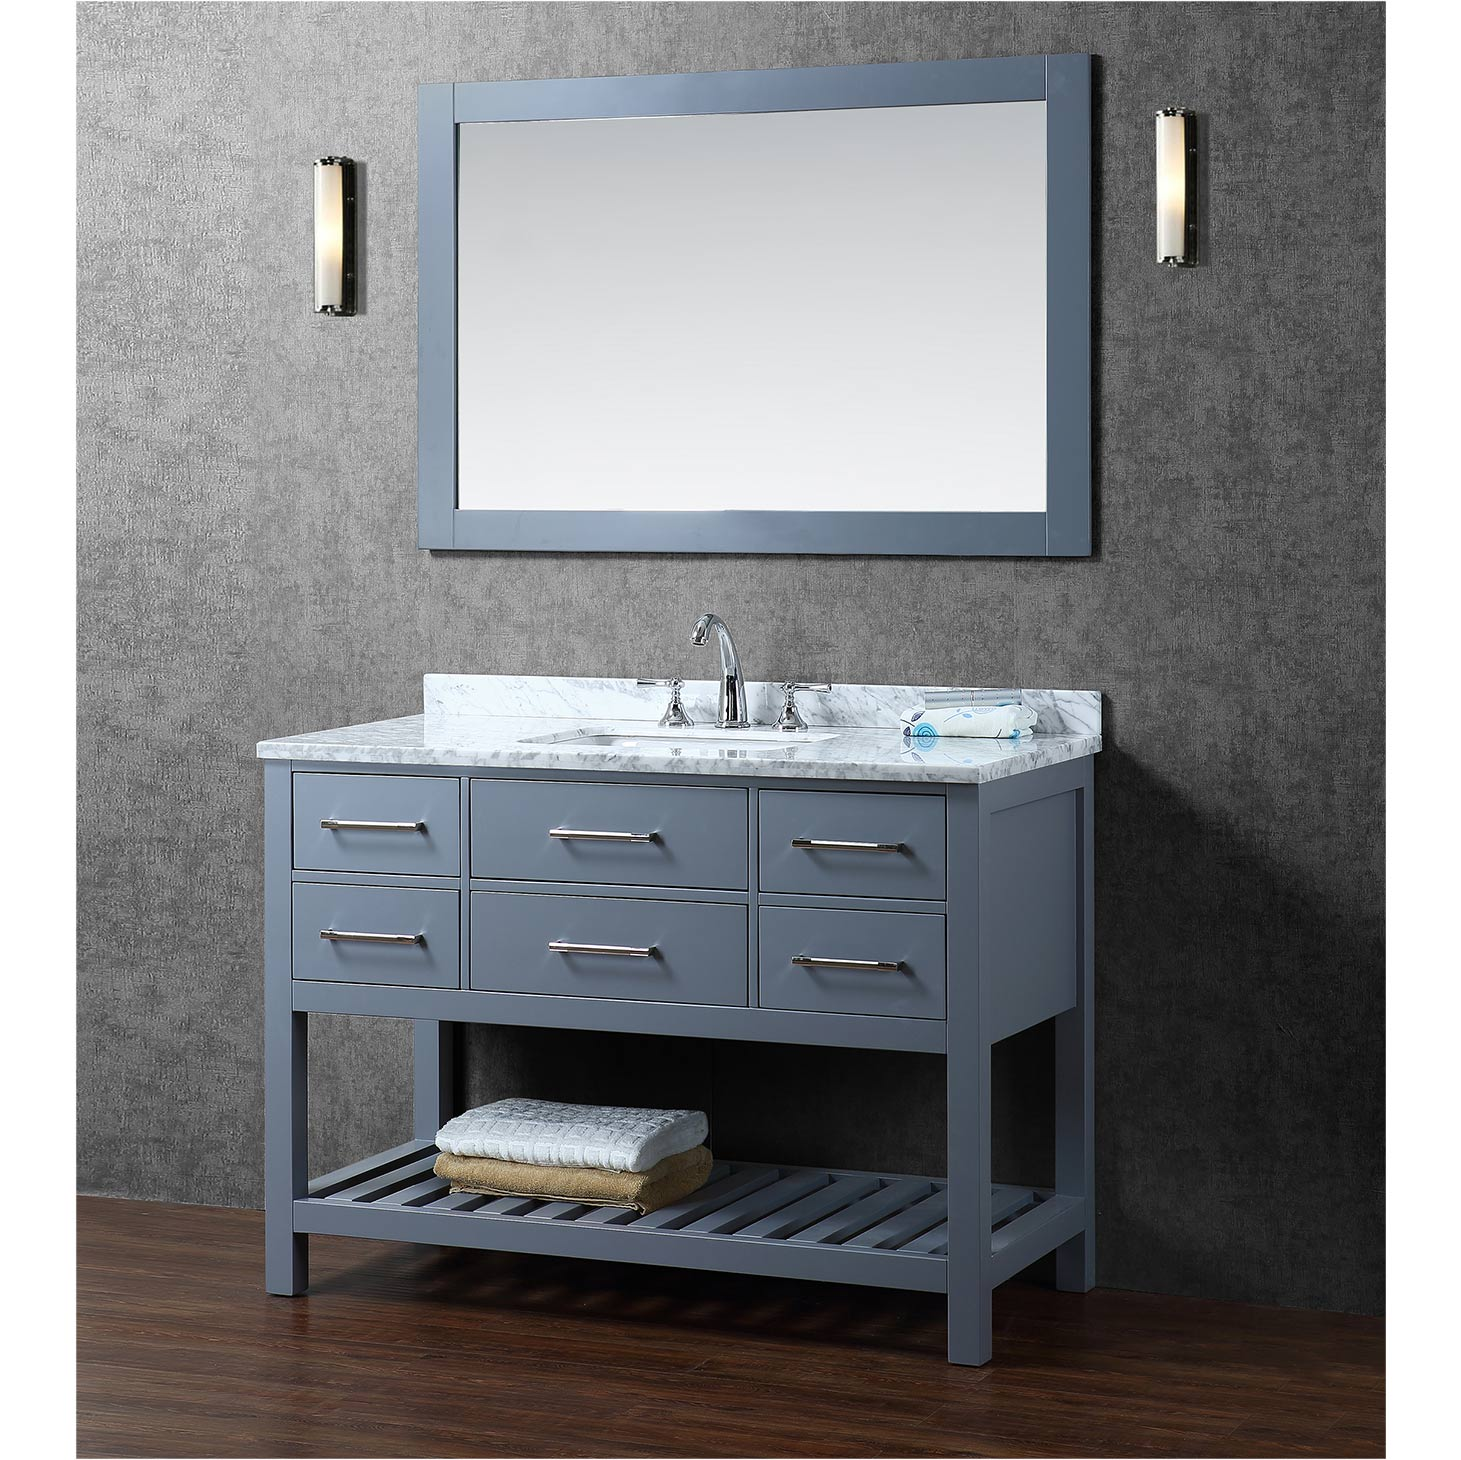 Buy antonia 48 inch solid wood single bathroom vanity in for Bathroom 48 inch vanity